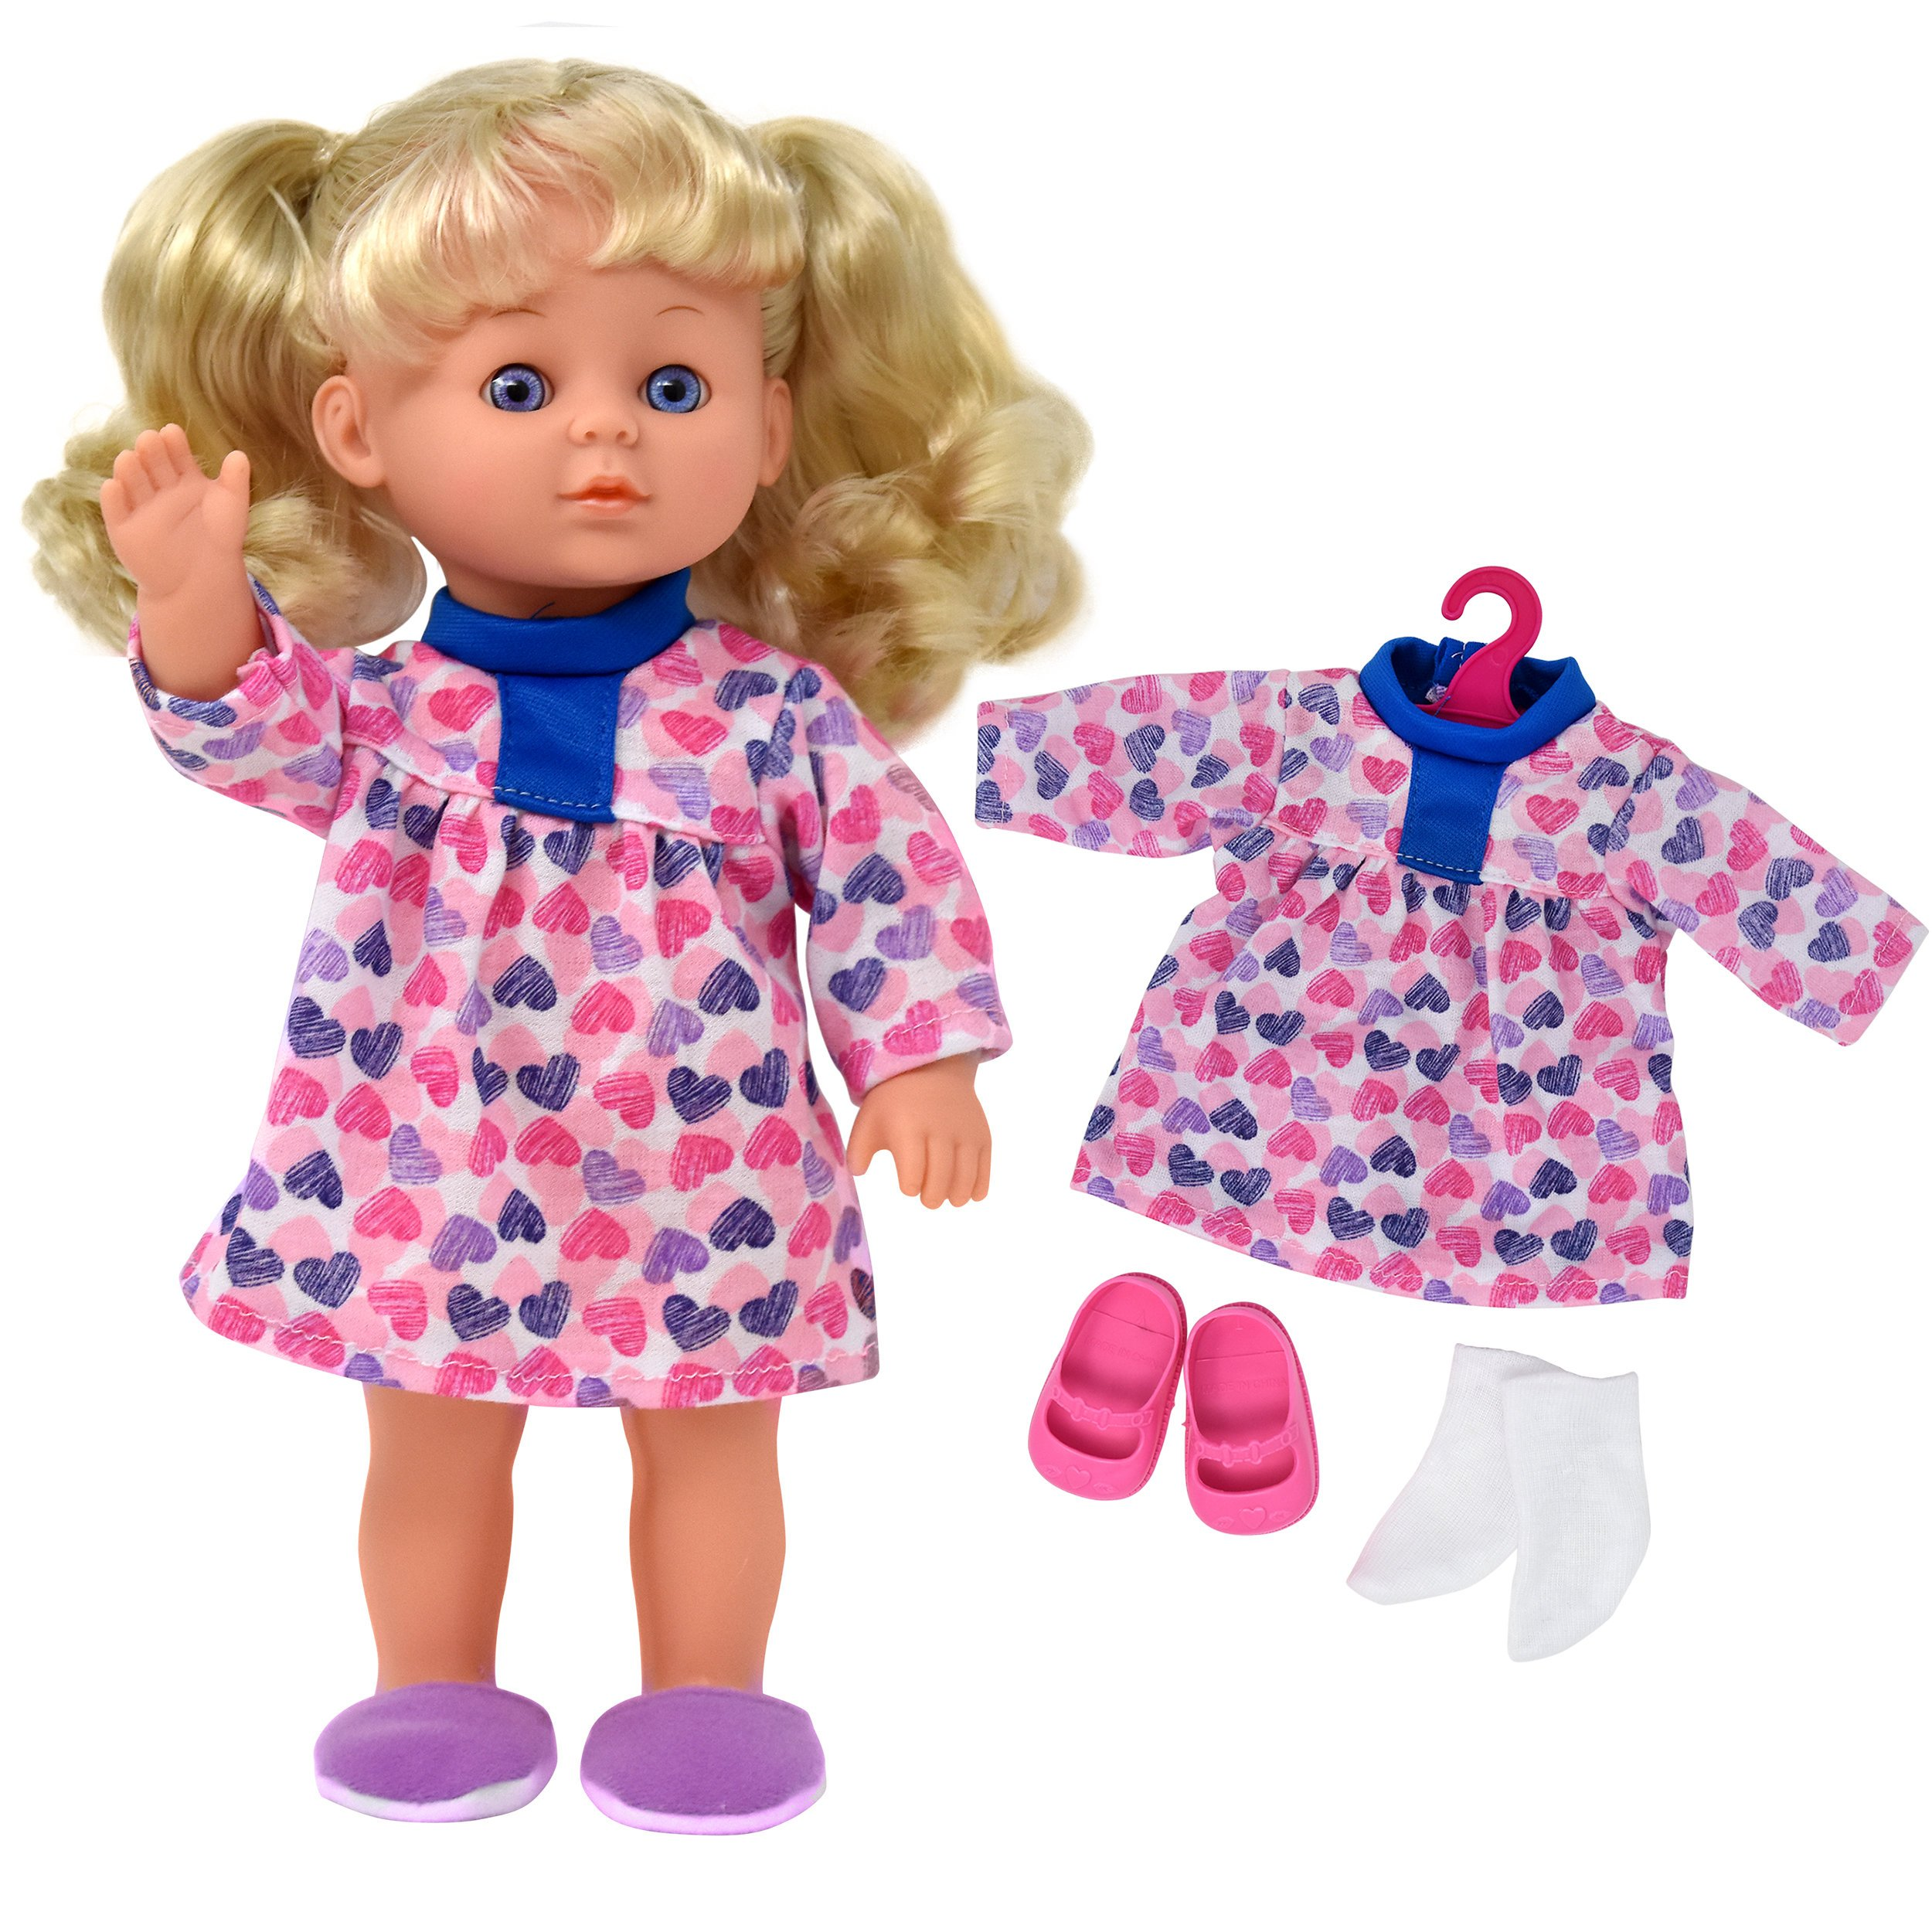 12 Inch Baby Doll with Baby Doll Clothes and Accessories Set